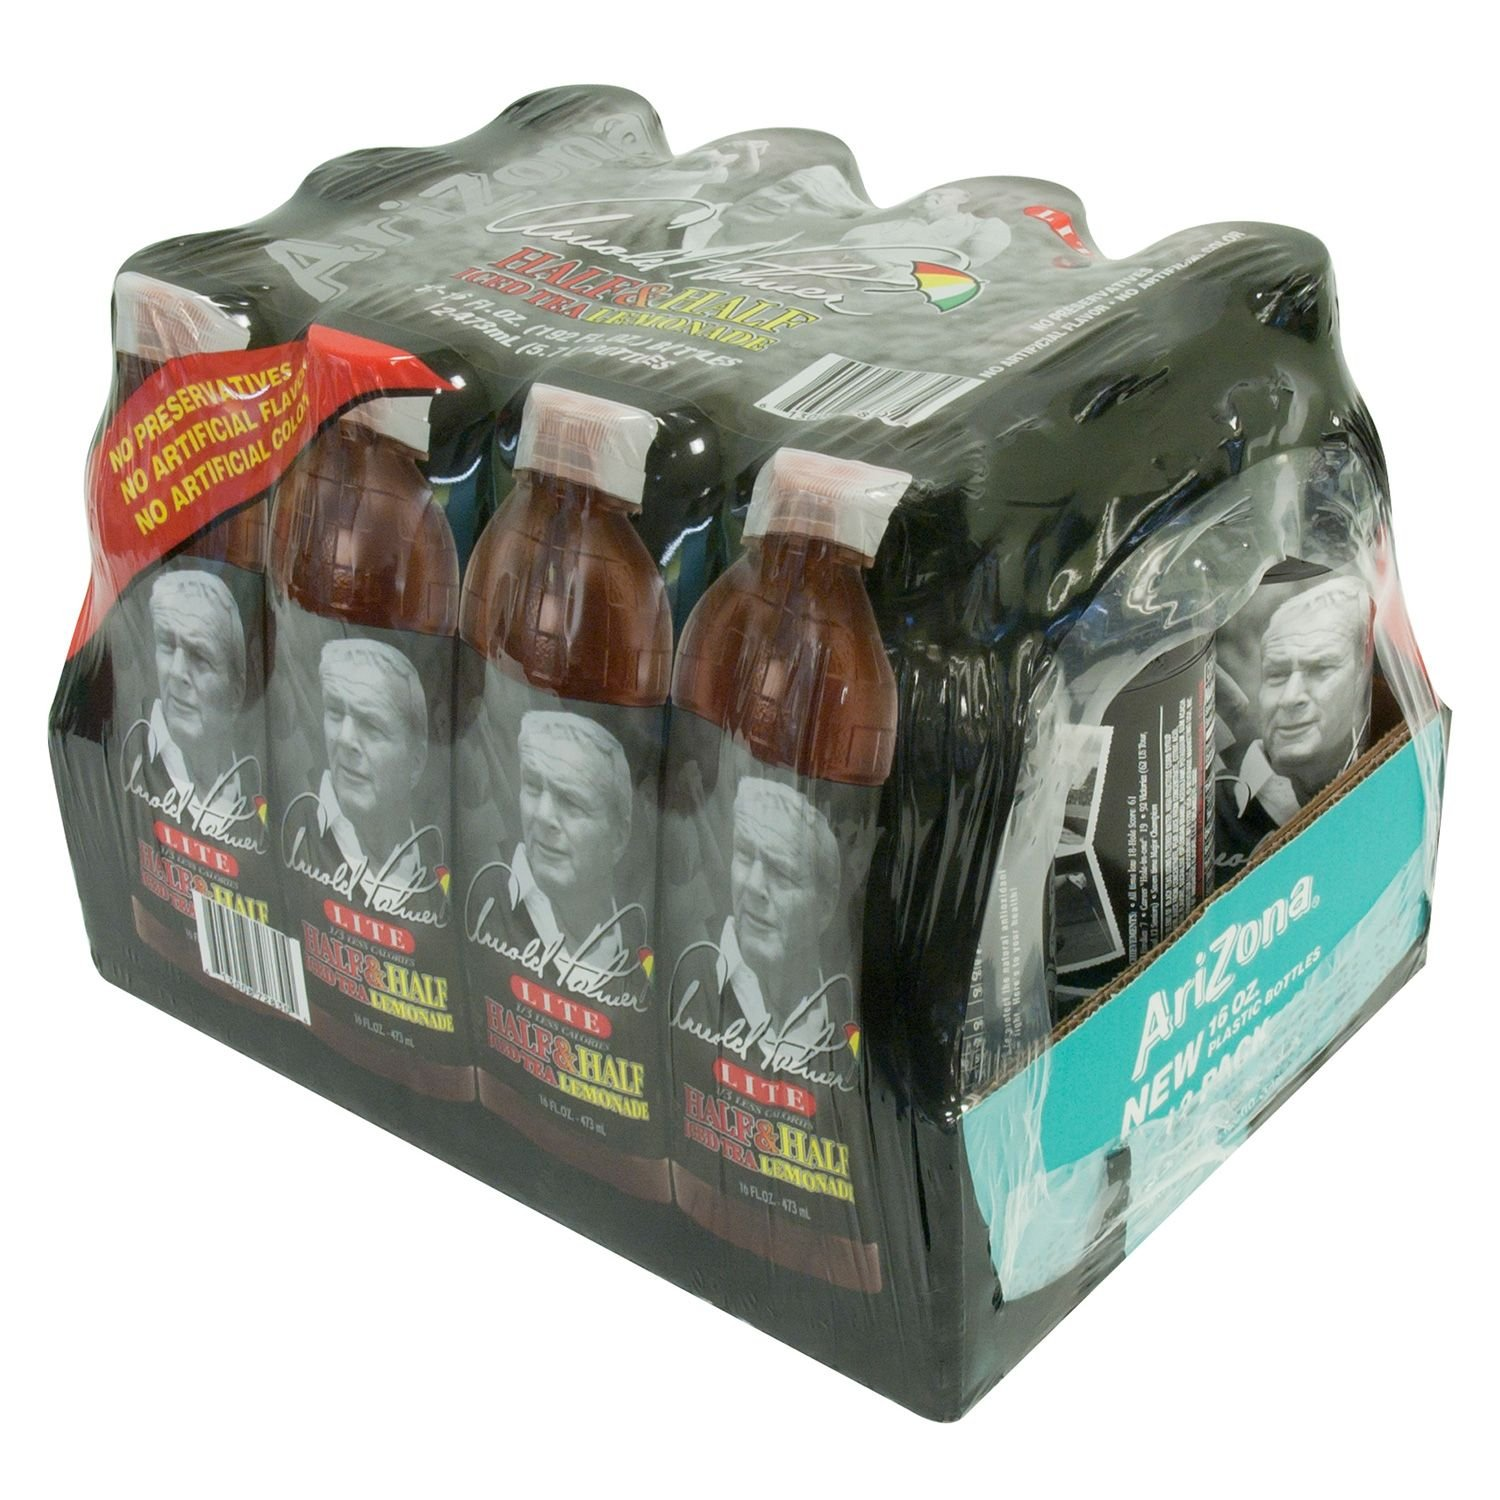 Arizona Arnold Palmer Tea(16 oz. bottles, 24 pk.) by AriZona